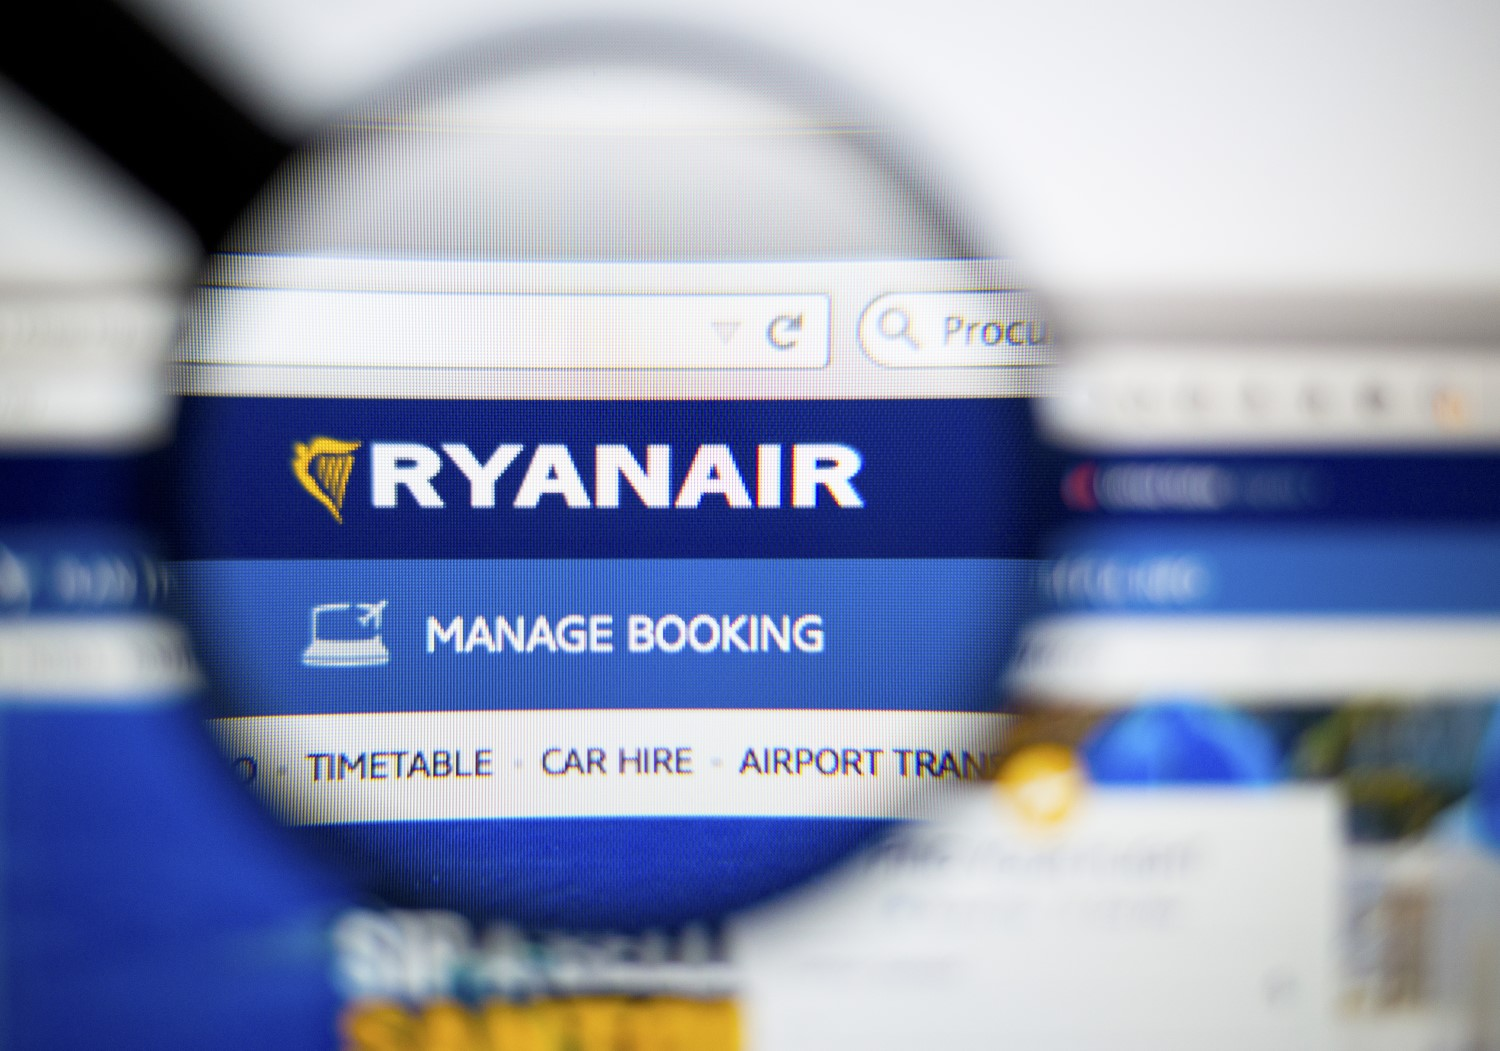 How to claim a refund for a Ryanair flight cancellation or schedule change